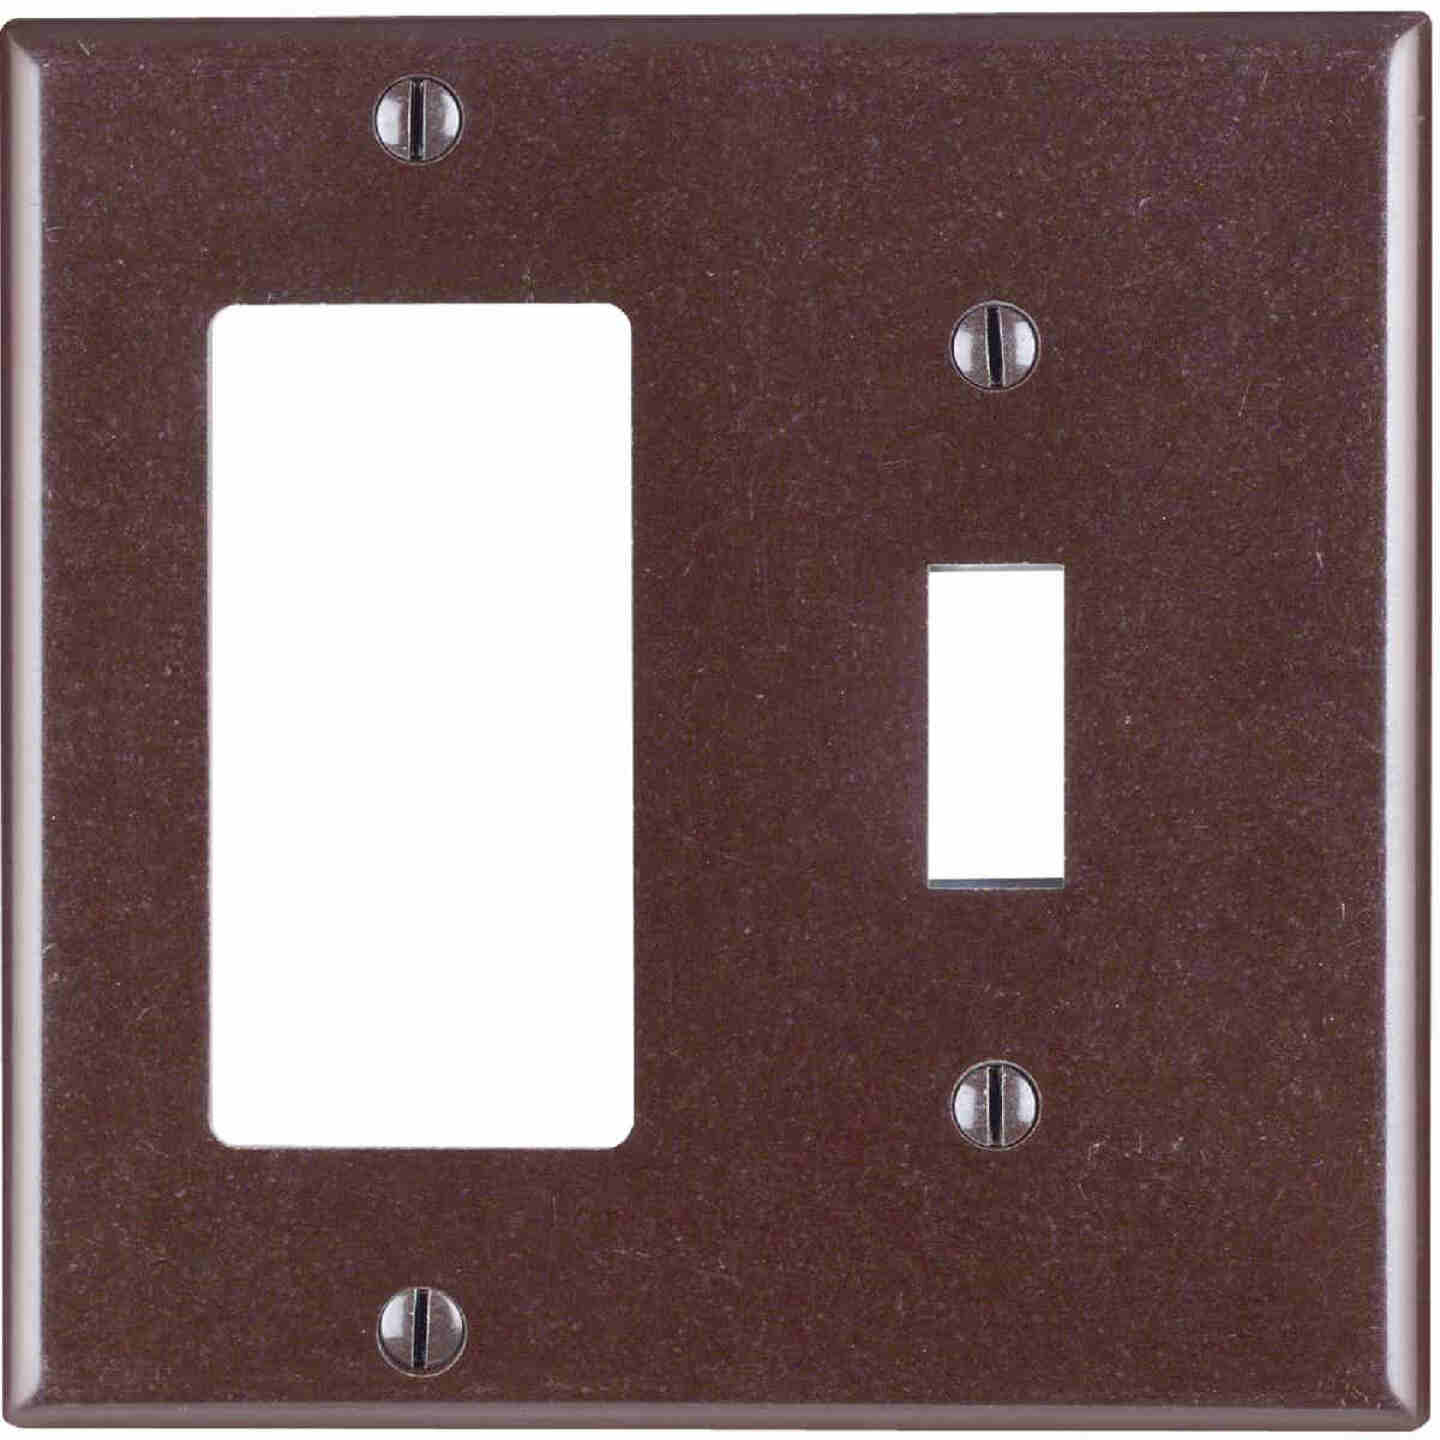 Leviton Decora 2-Gang Thermoset Single Toggle/Rocker Wall Plate, Brown Image 1